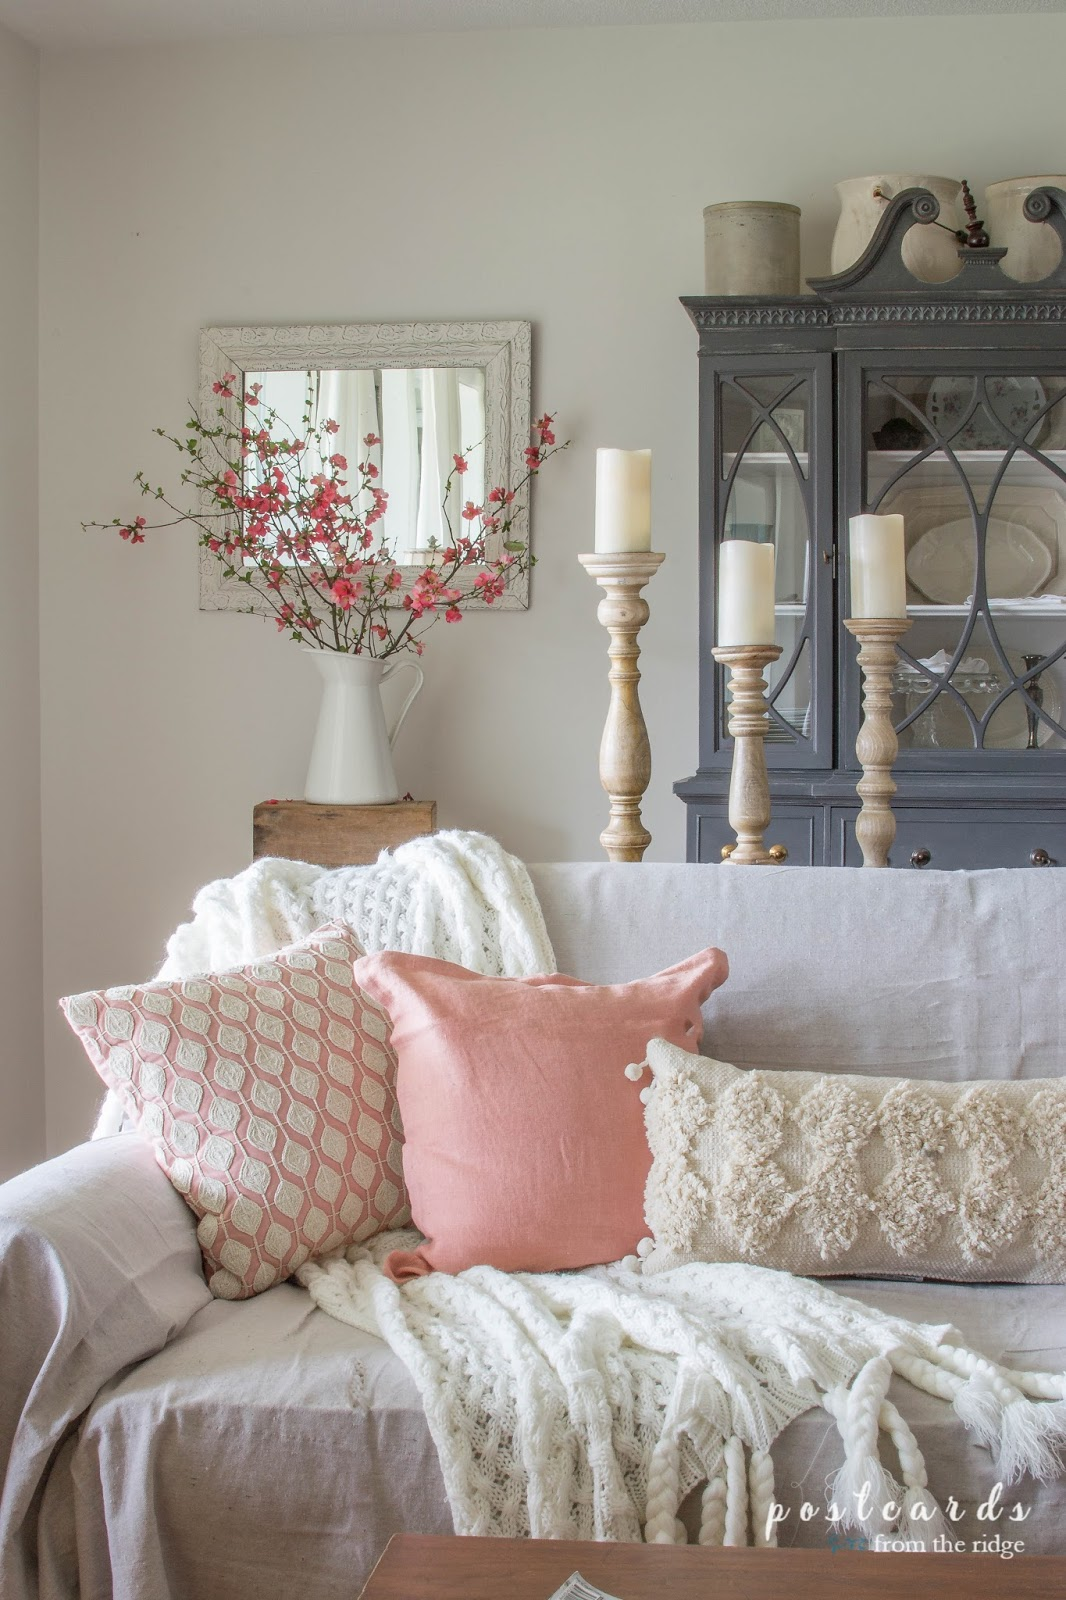 Blush And Bashful Spring Accents In The Living Room Home Decorators Catalog Best Ideas of Home Decor and Design [homedecoratorscatalog.us]